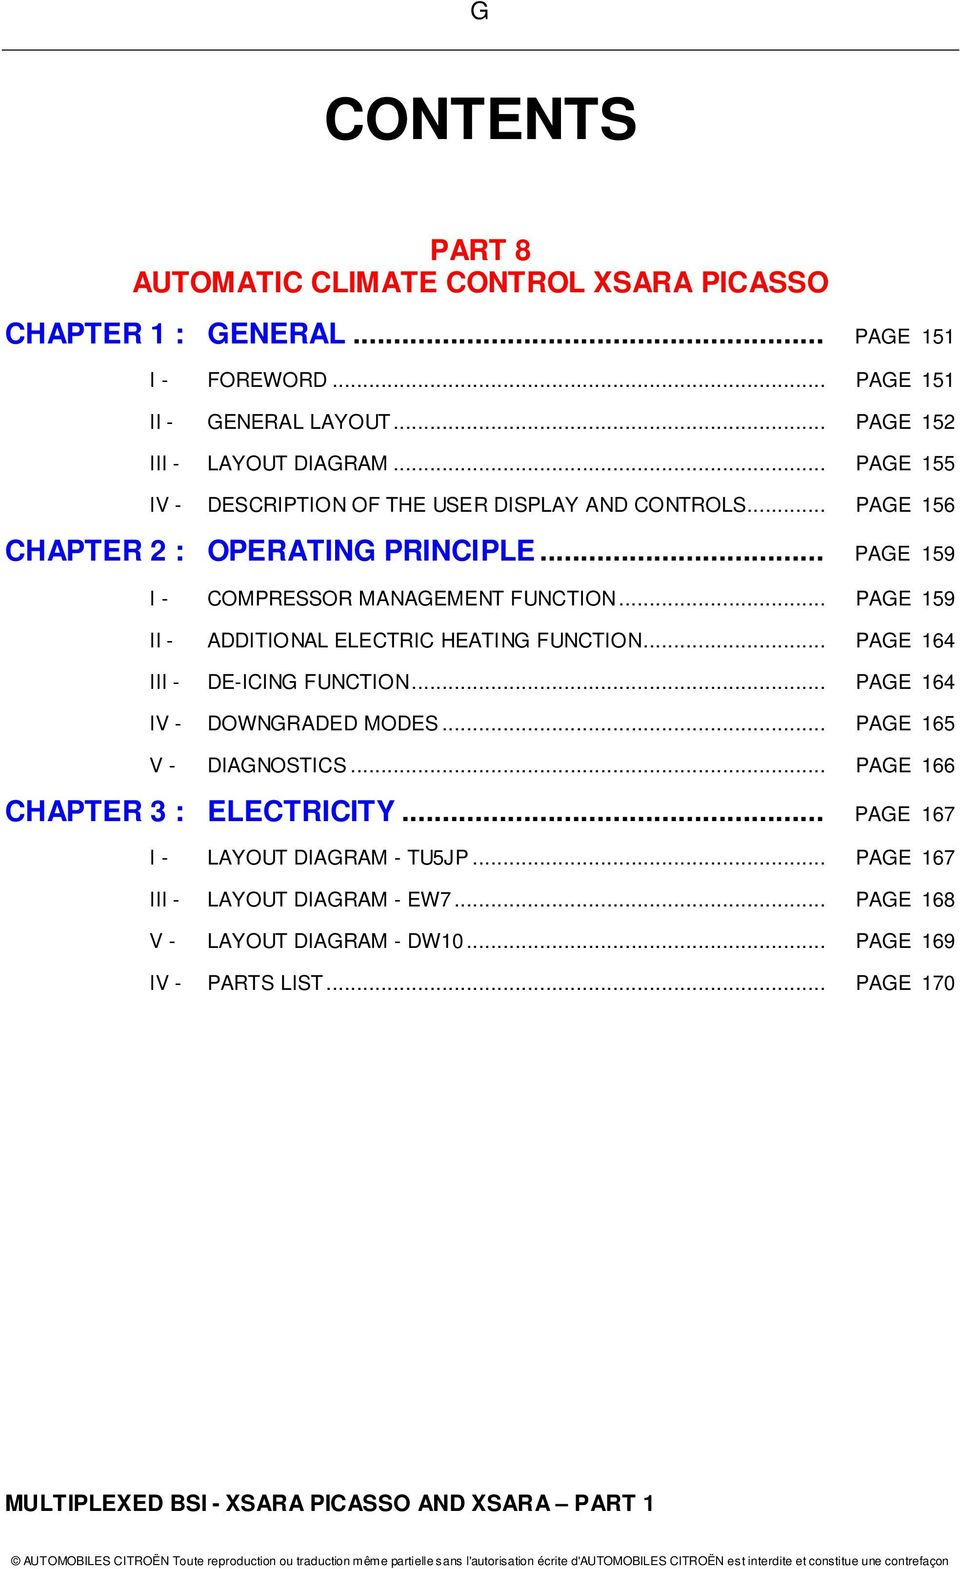 Multiplexed Bsi Operating Principle For The Xsara Picasso And Citroen C8 Abs Wiring Diagram Page 159 Ii Additional Electric Heating Function 164 Iii